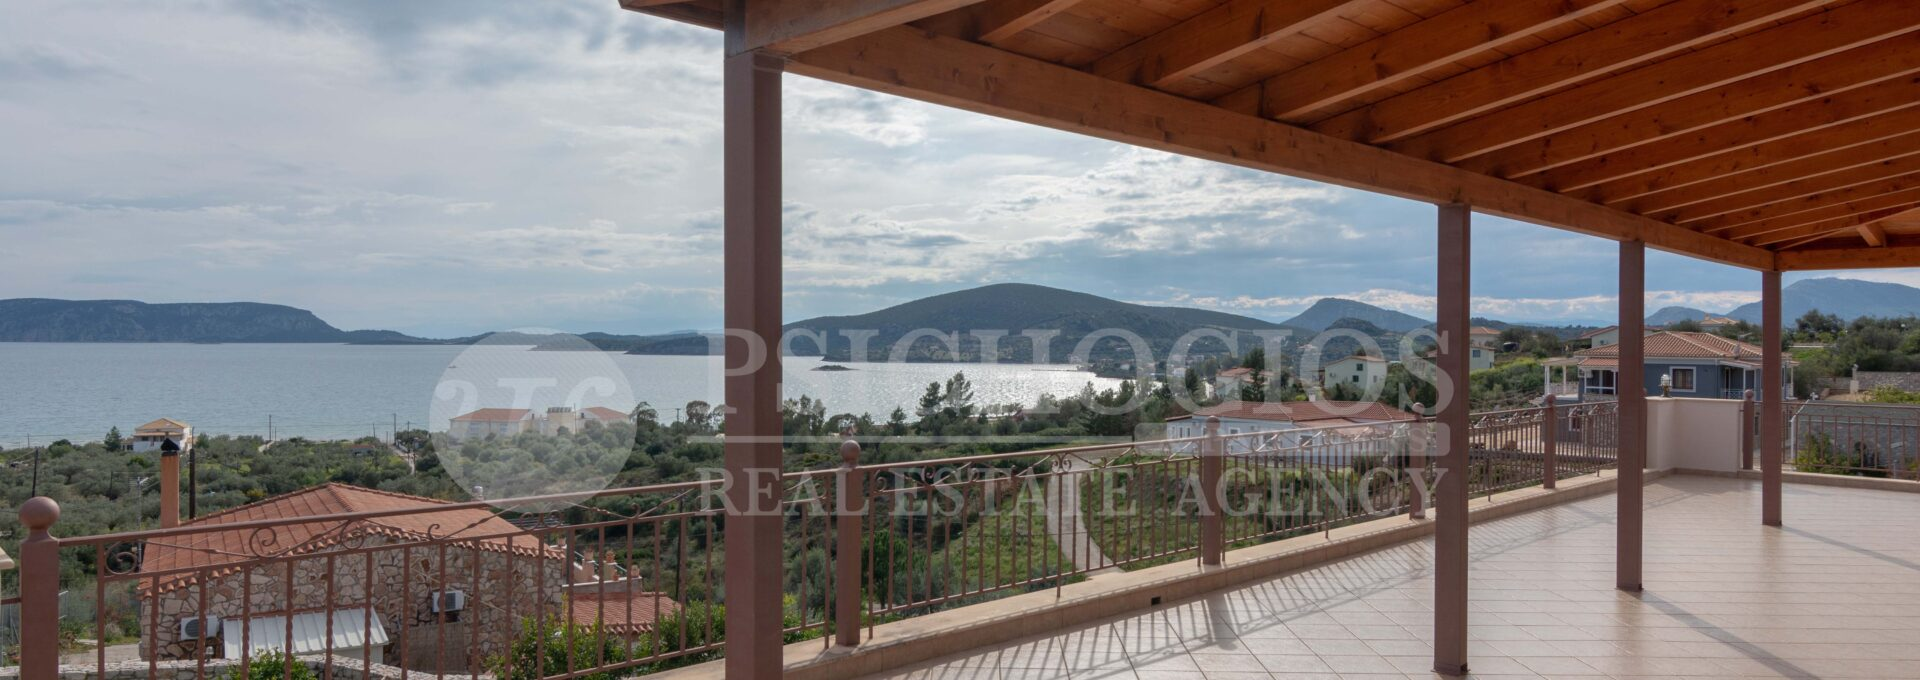 for_sale_house_107_square_meters_3_bedrooms_sea_view_ermioni_greece 1 1 (32)